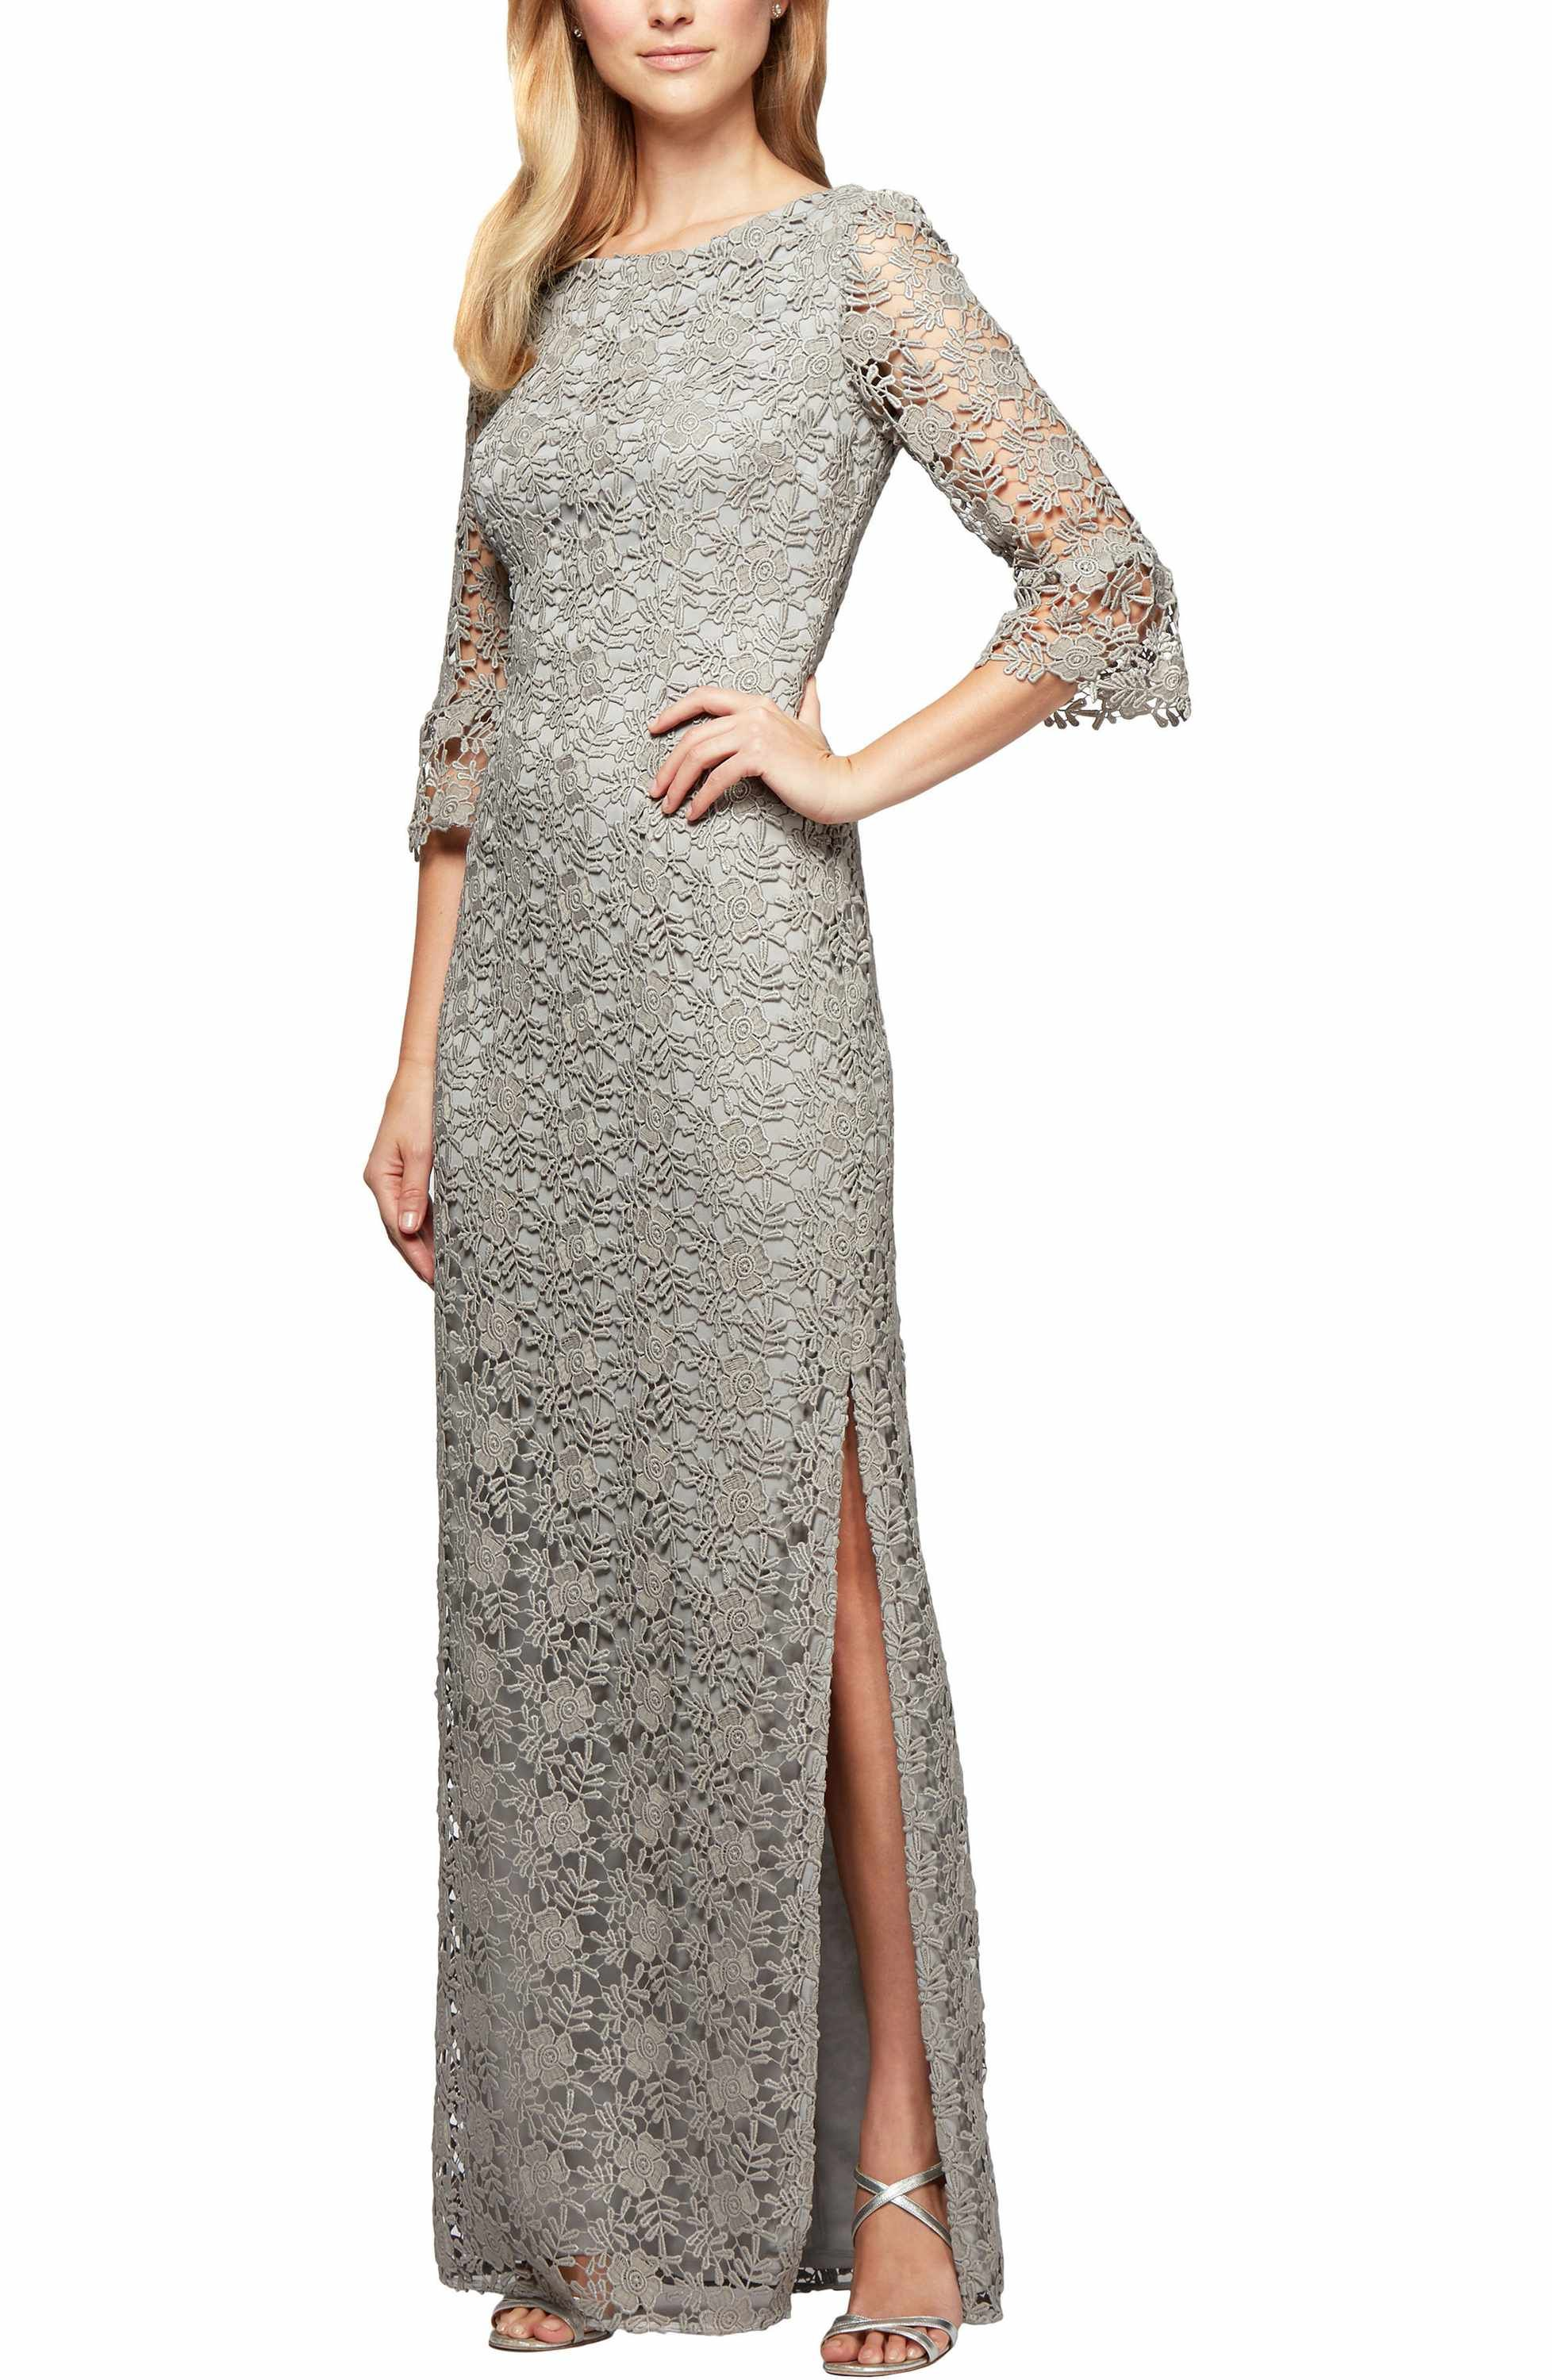 41636f75ce1c6e Main Image - Alex Evenings Embroidered Lace Gown | MOB in 2019 ...